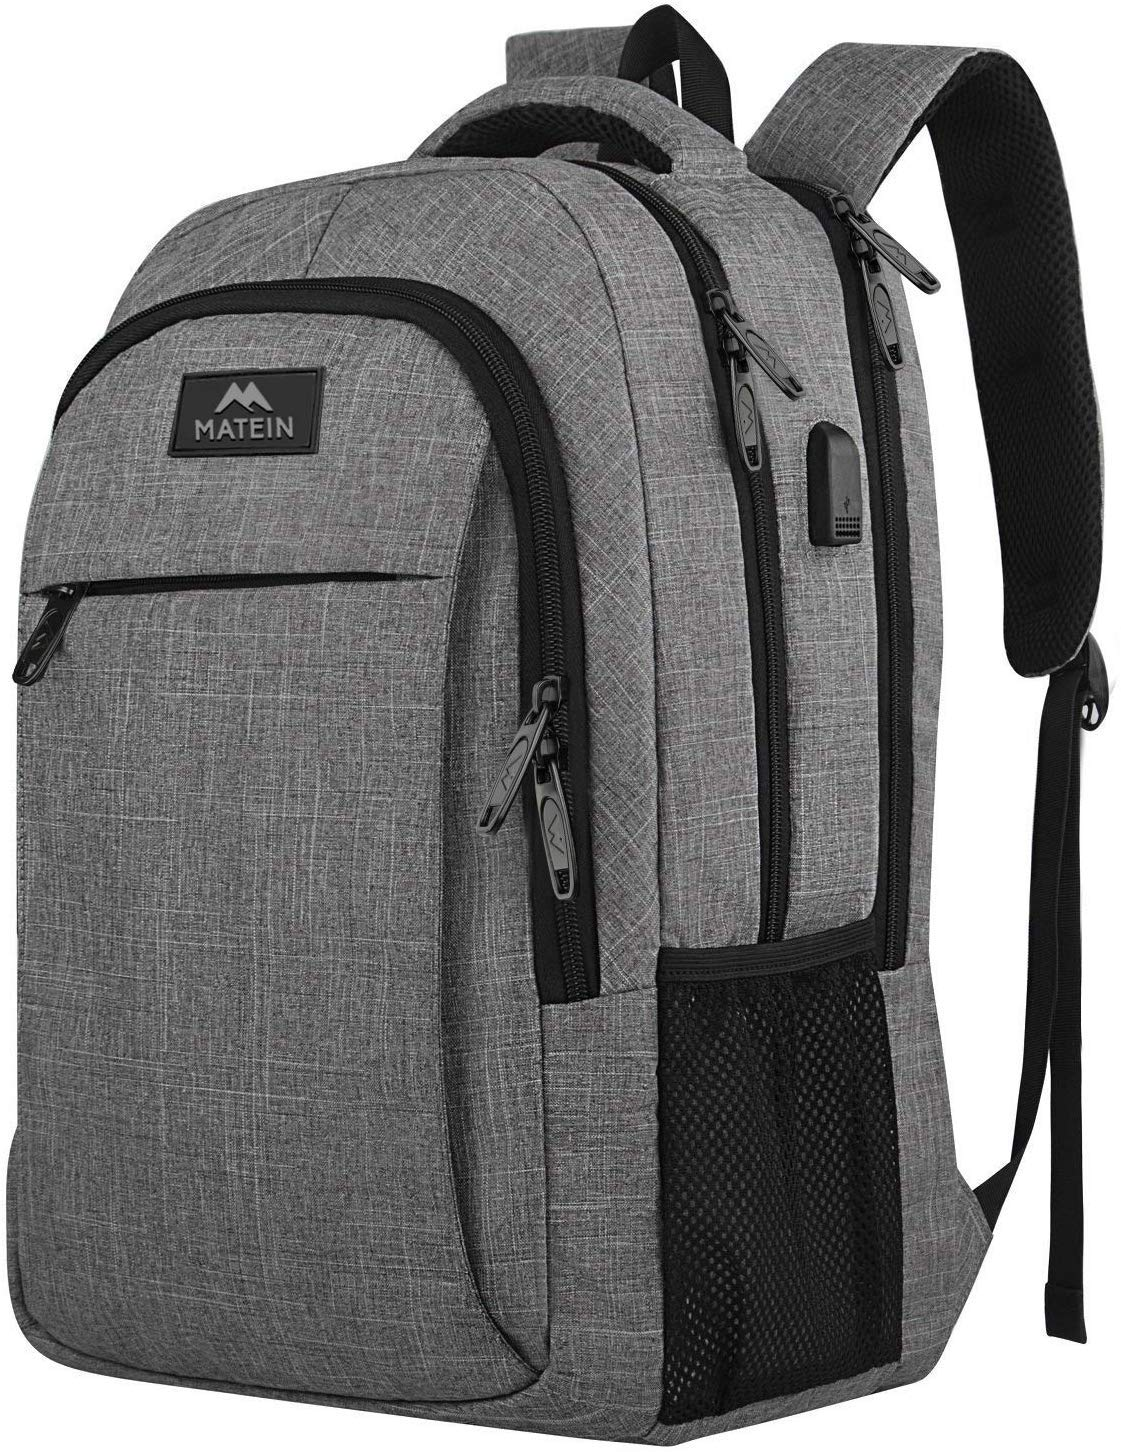 Travel laptop backpack, business anti-theft slim, durable laptops backpack with USB charging port, water-resistant college school computer bag gifts for women and men fits 15.6-inch notebook, grey